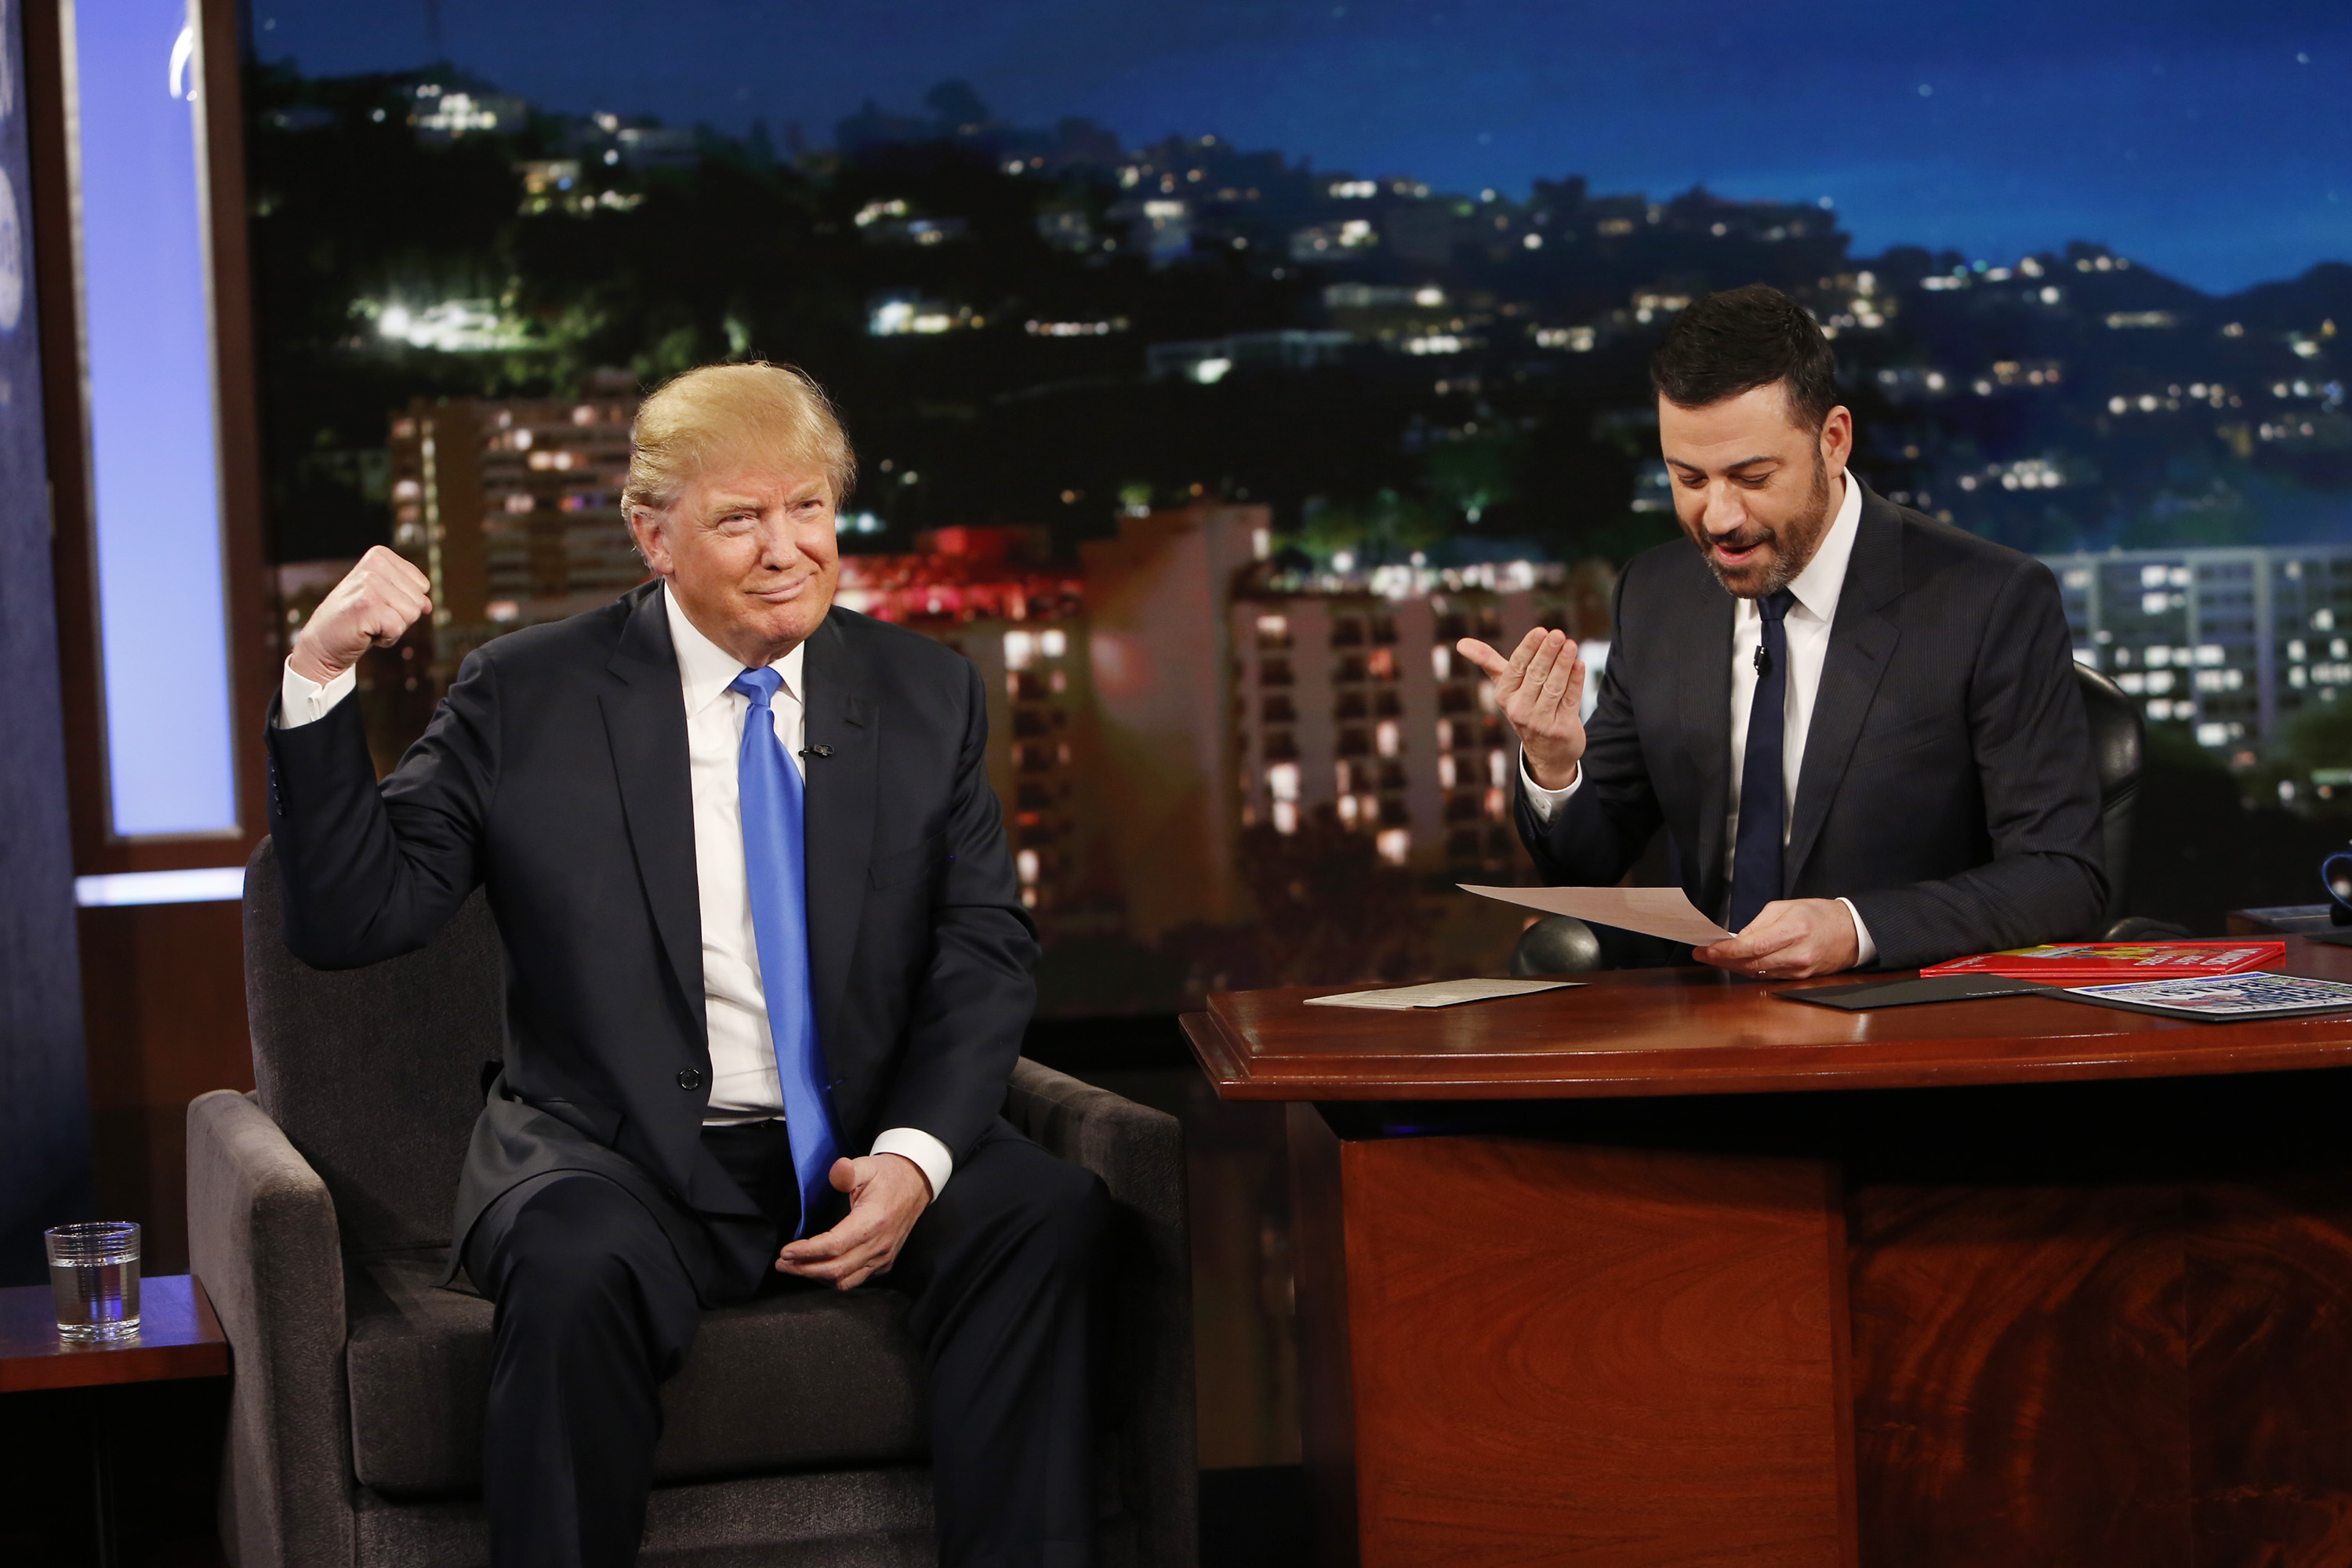 GOP presidential candidate Donald Trump appears on Jimmy Kimmel Live! on Dec. 16, 2015